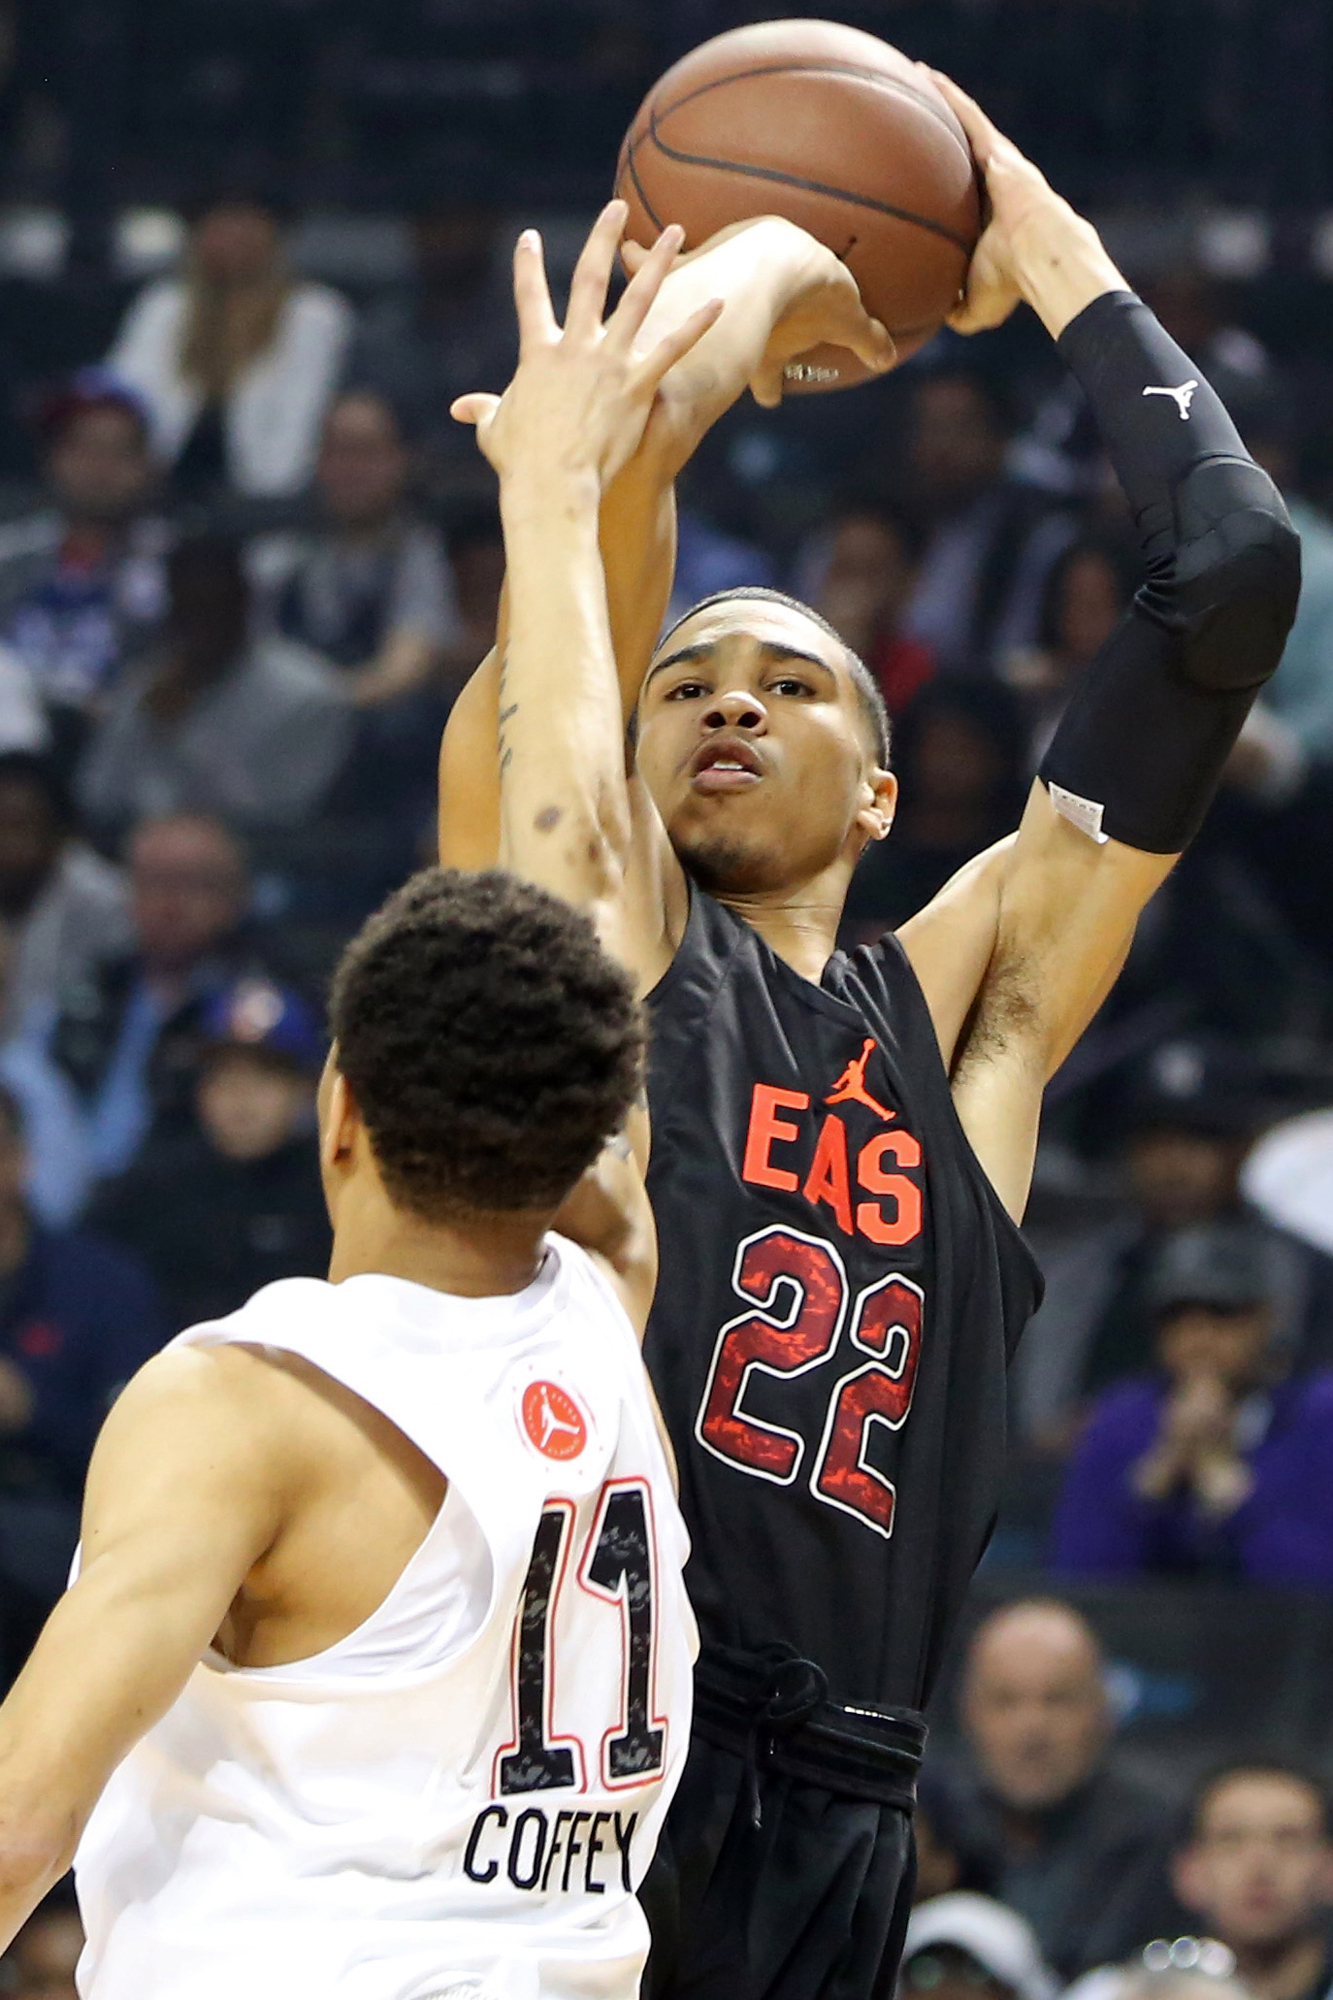 East team's Jayson Tatum, right, shoots against the West team during a high school basketball game in the Jordan Brand Classic in New York.